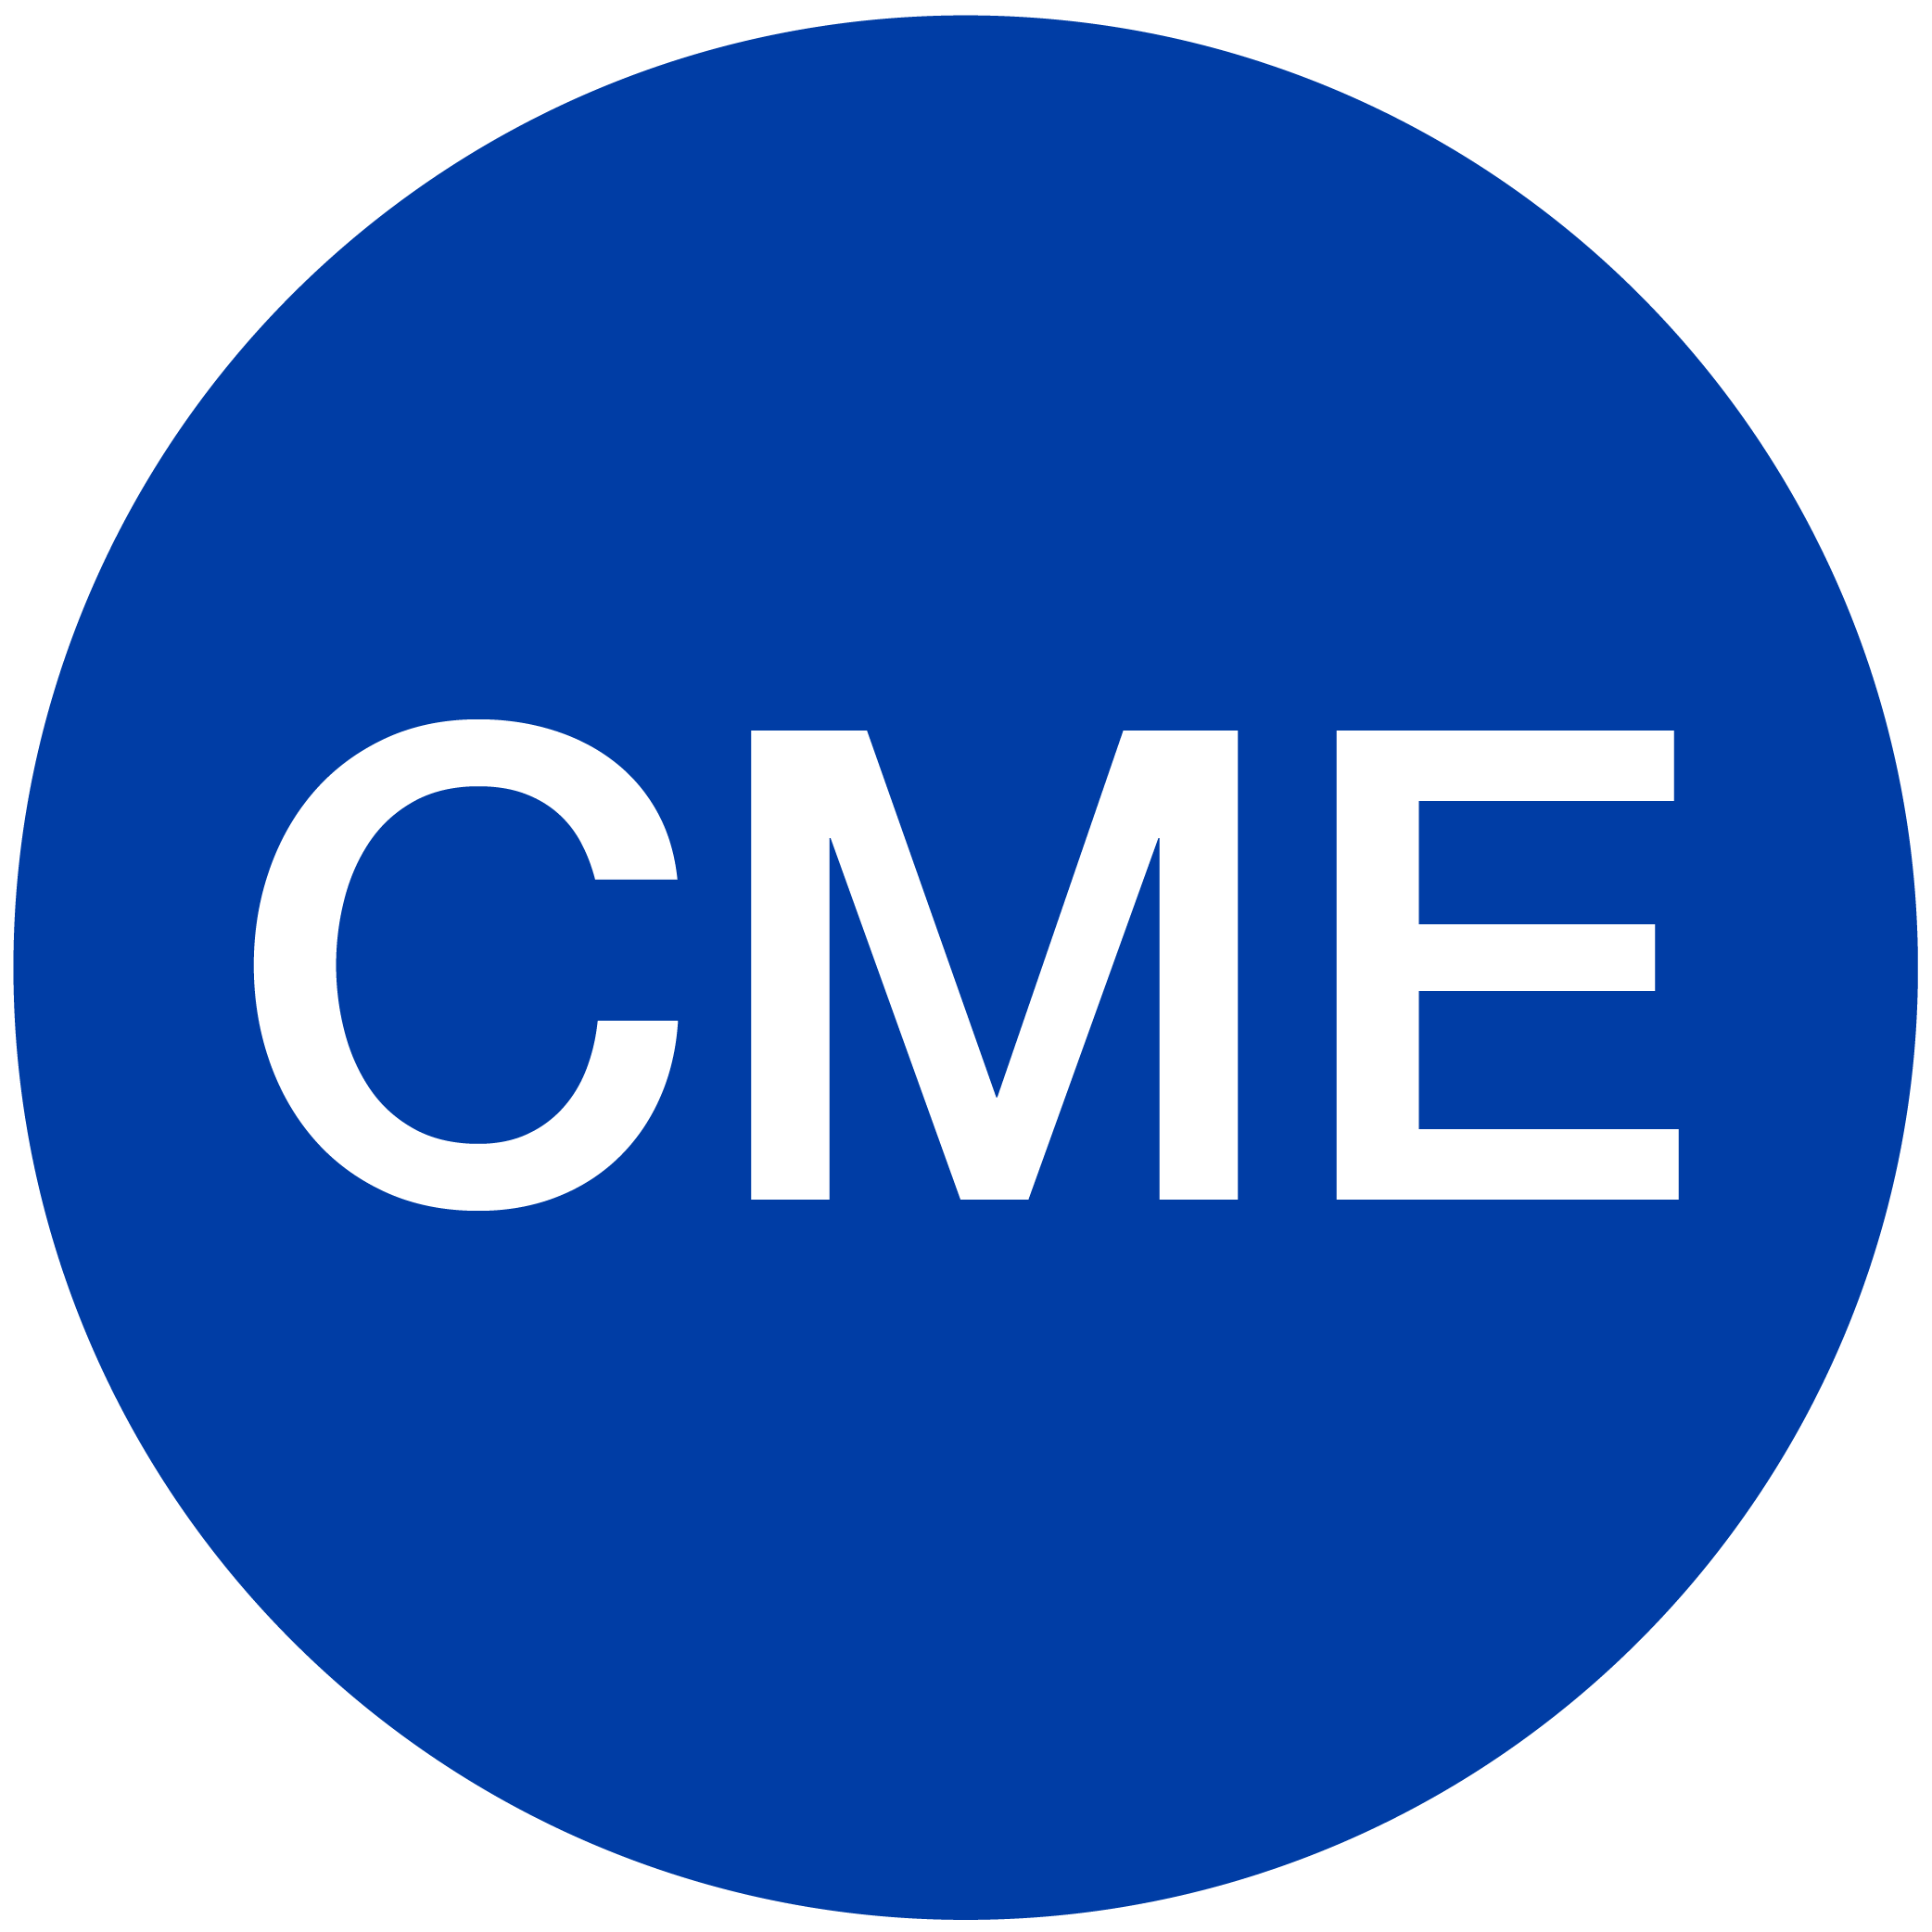 Explore more Mayo Clinic CME courses